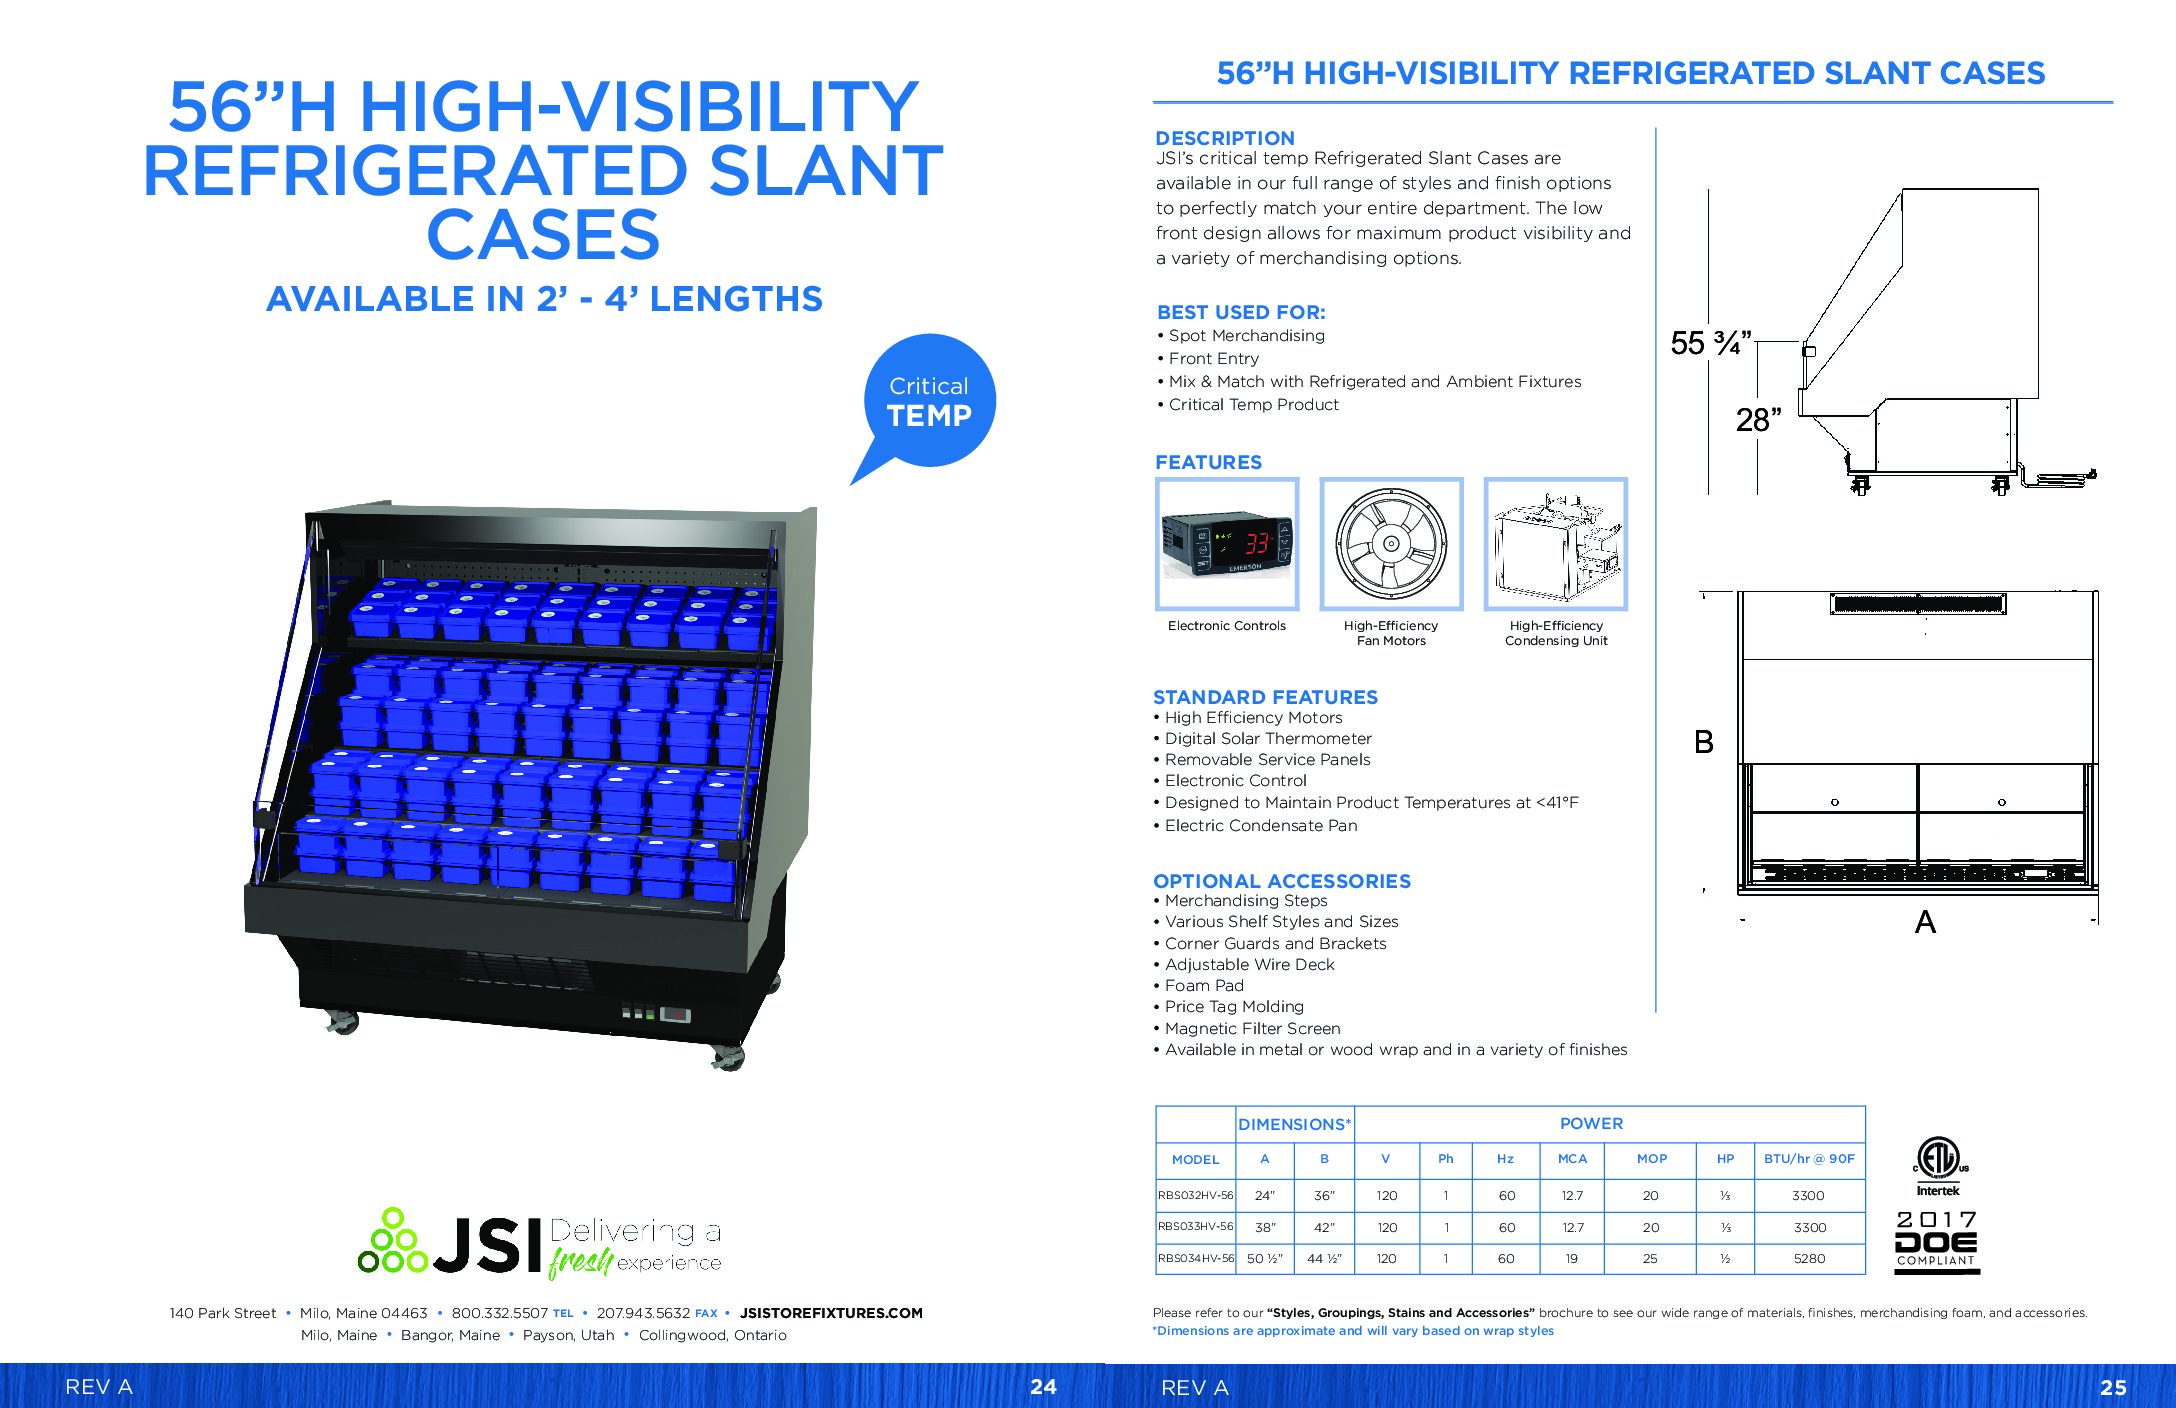 56in High-Visibility Refrigerated Slant Cases 2ft-4ft (PDF)